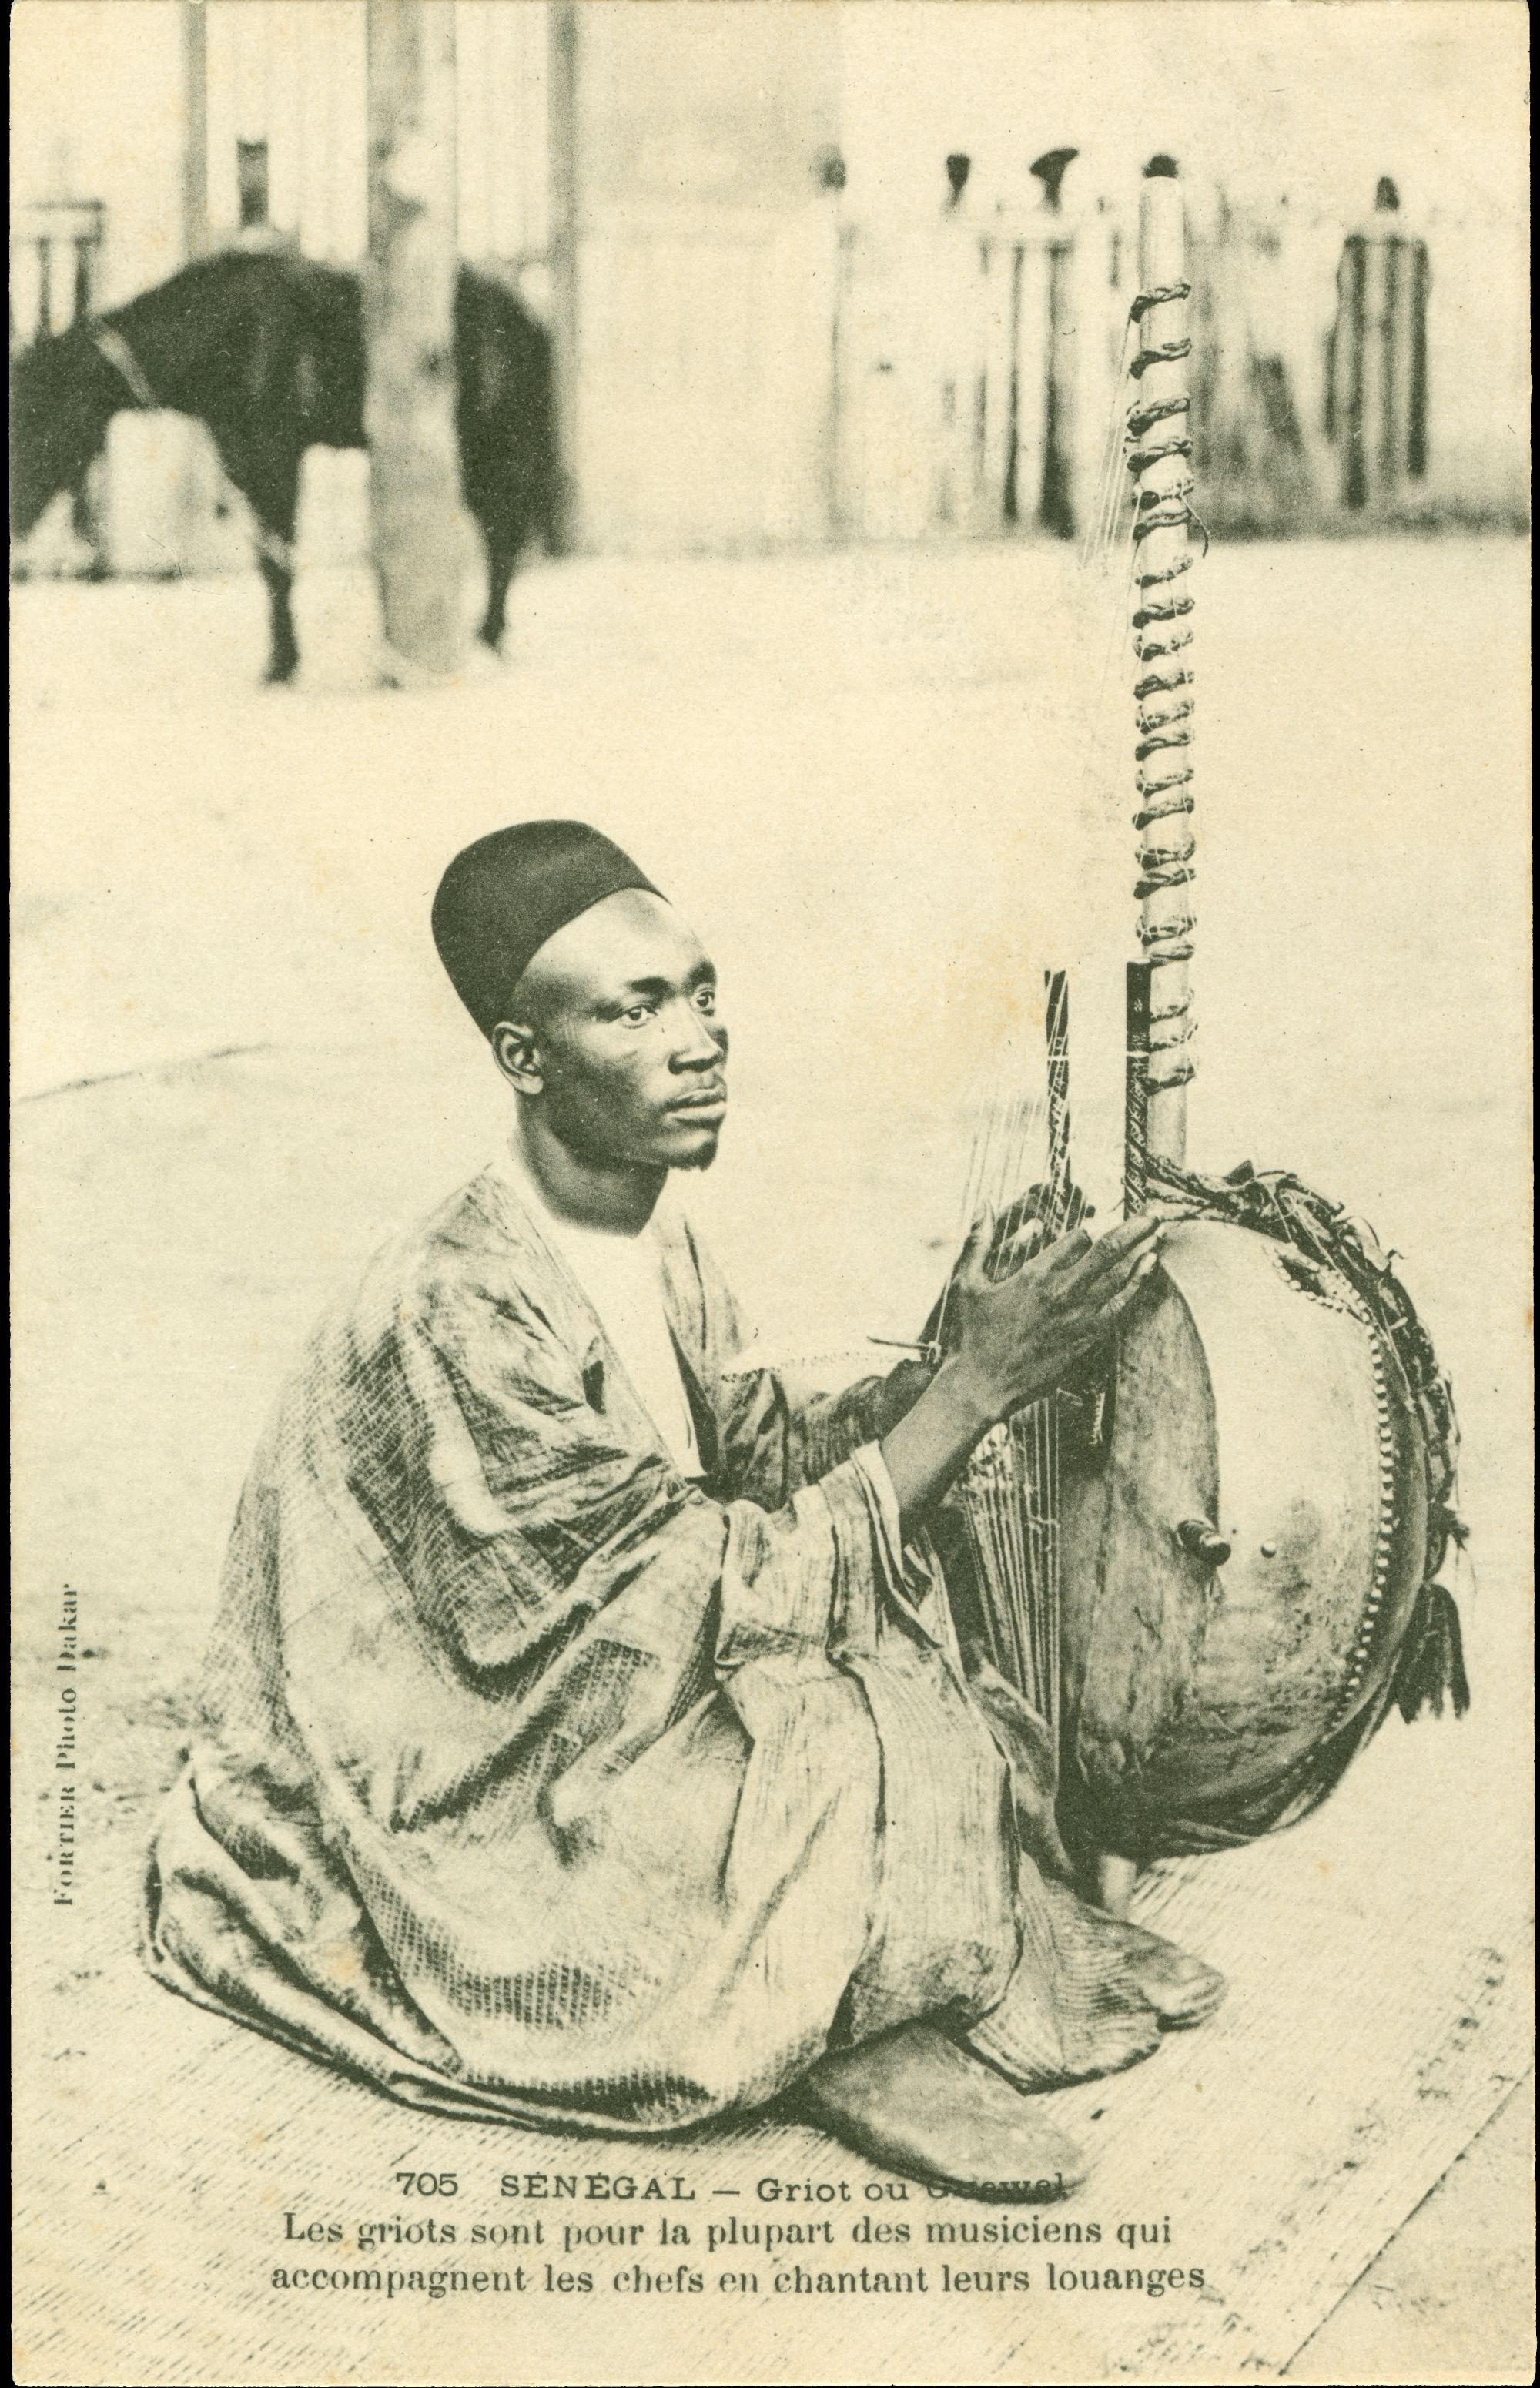 An image of a postcard showing a photograph of a griot, a story-teller or musician, playing his kora, a calbash harp.